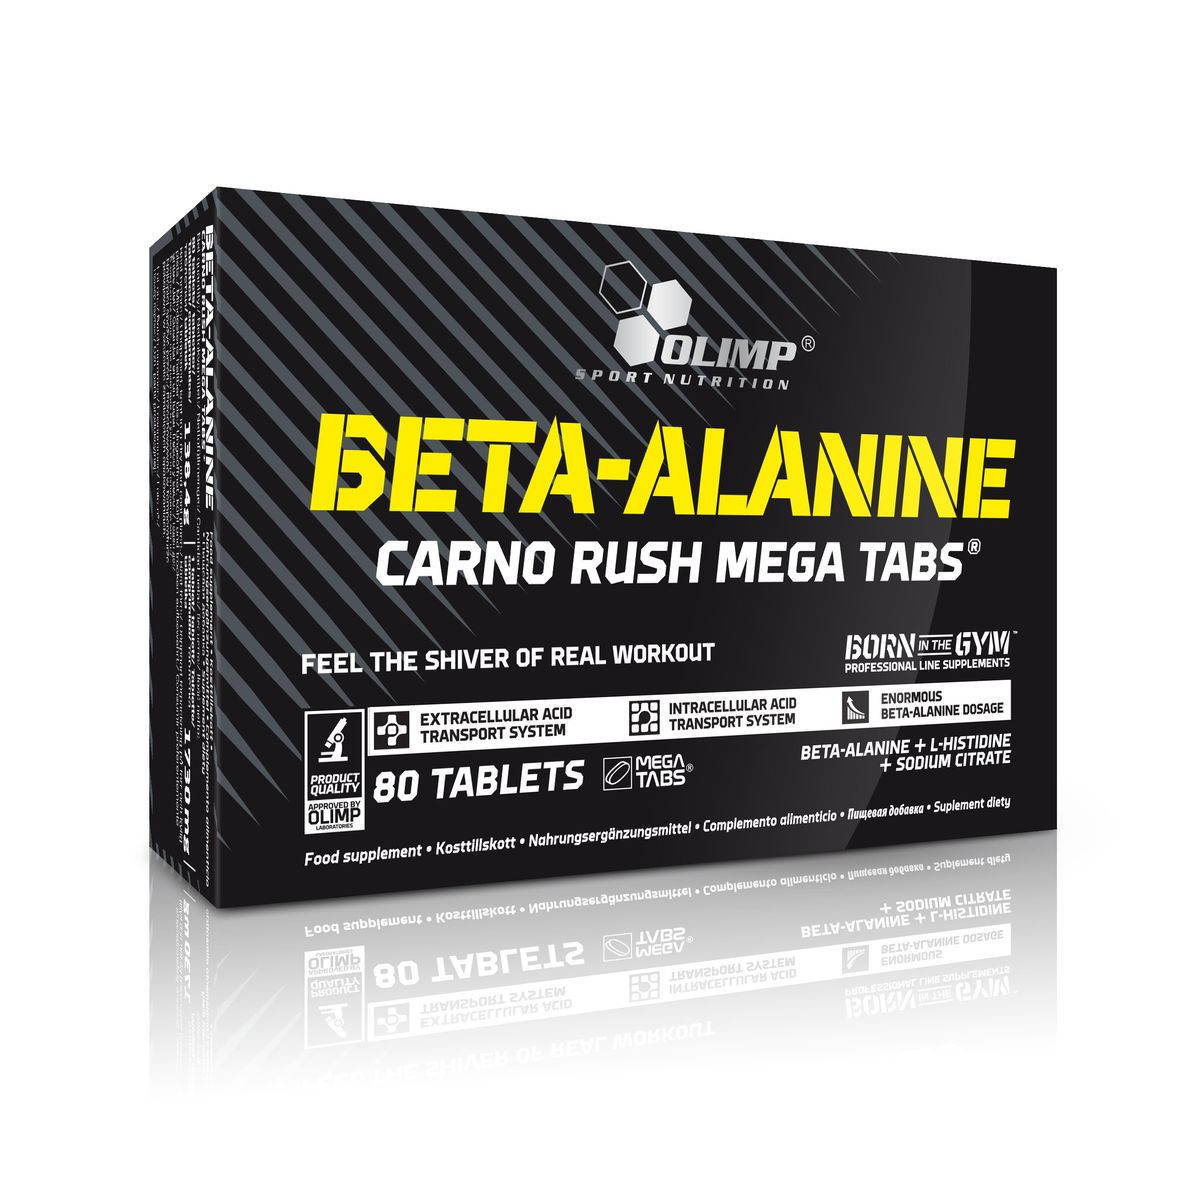 Аминокислоты Olimp Sport Nutrition Beta Alanin Carno Rush Mega Tabs, 80 таблеток креатин olimp sport nutrition mega caps 120 капсул